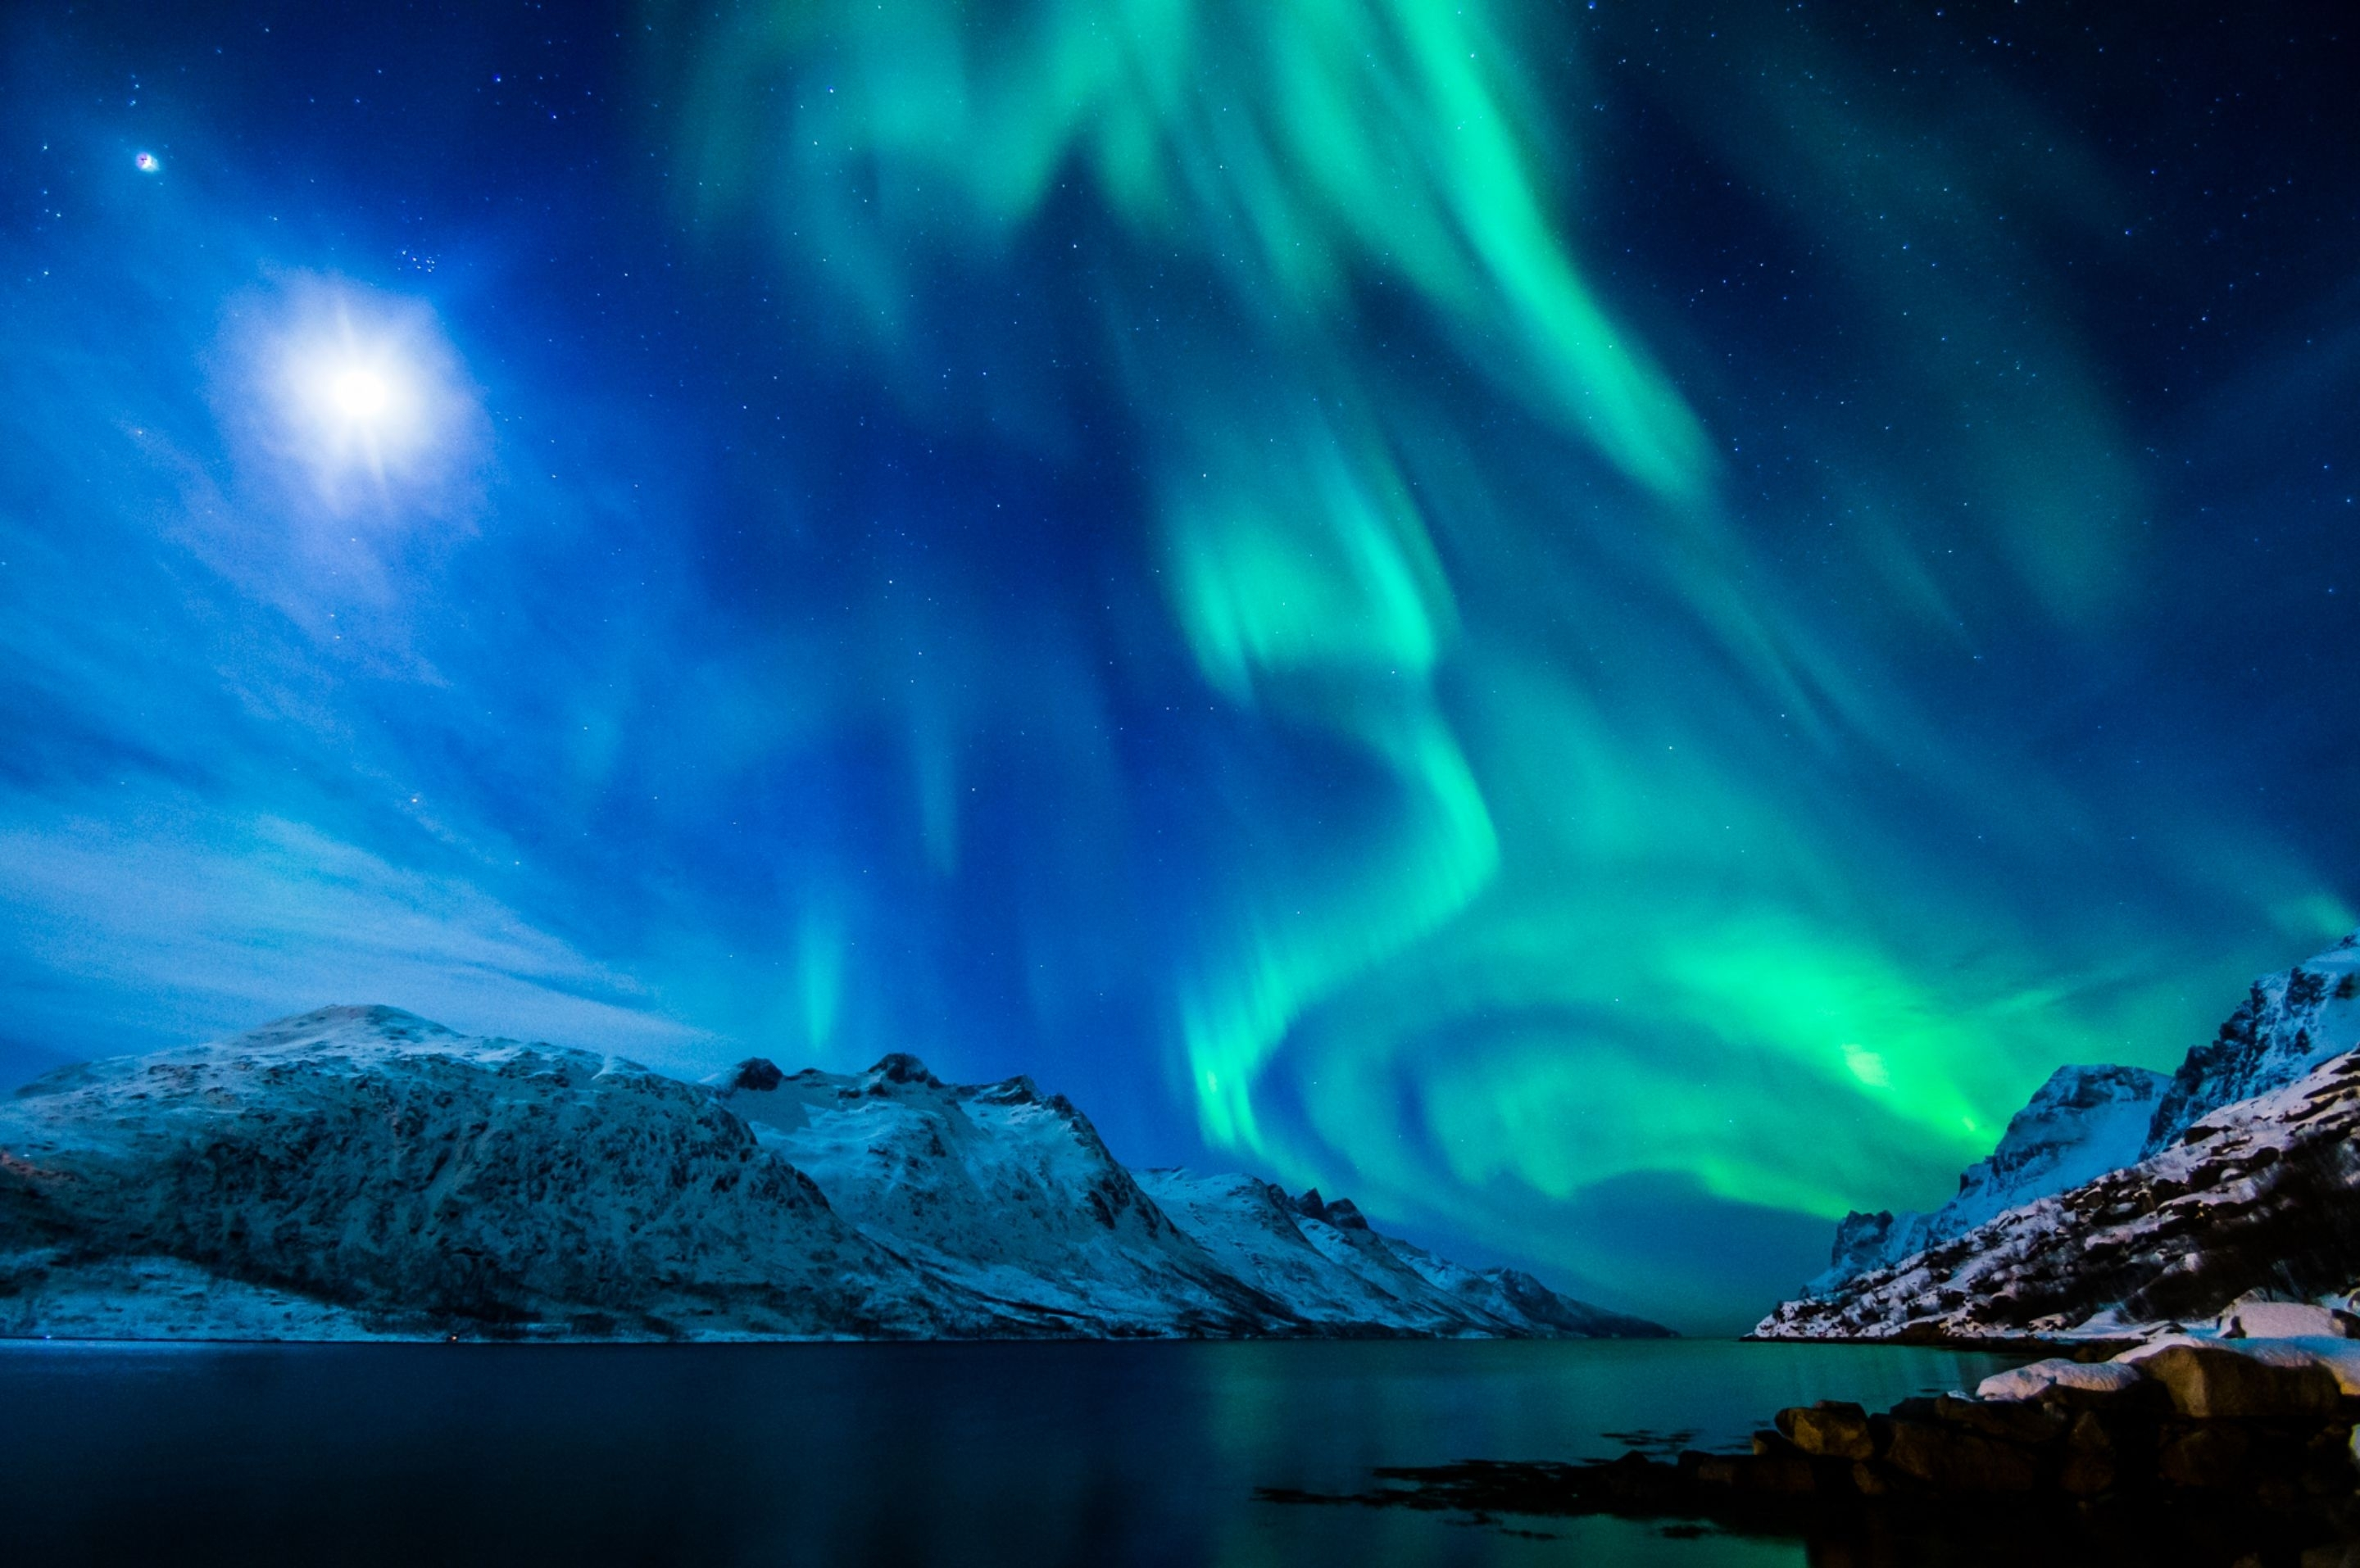 aurora borealis over winter mountains full hd fond d'écran and